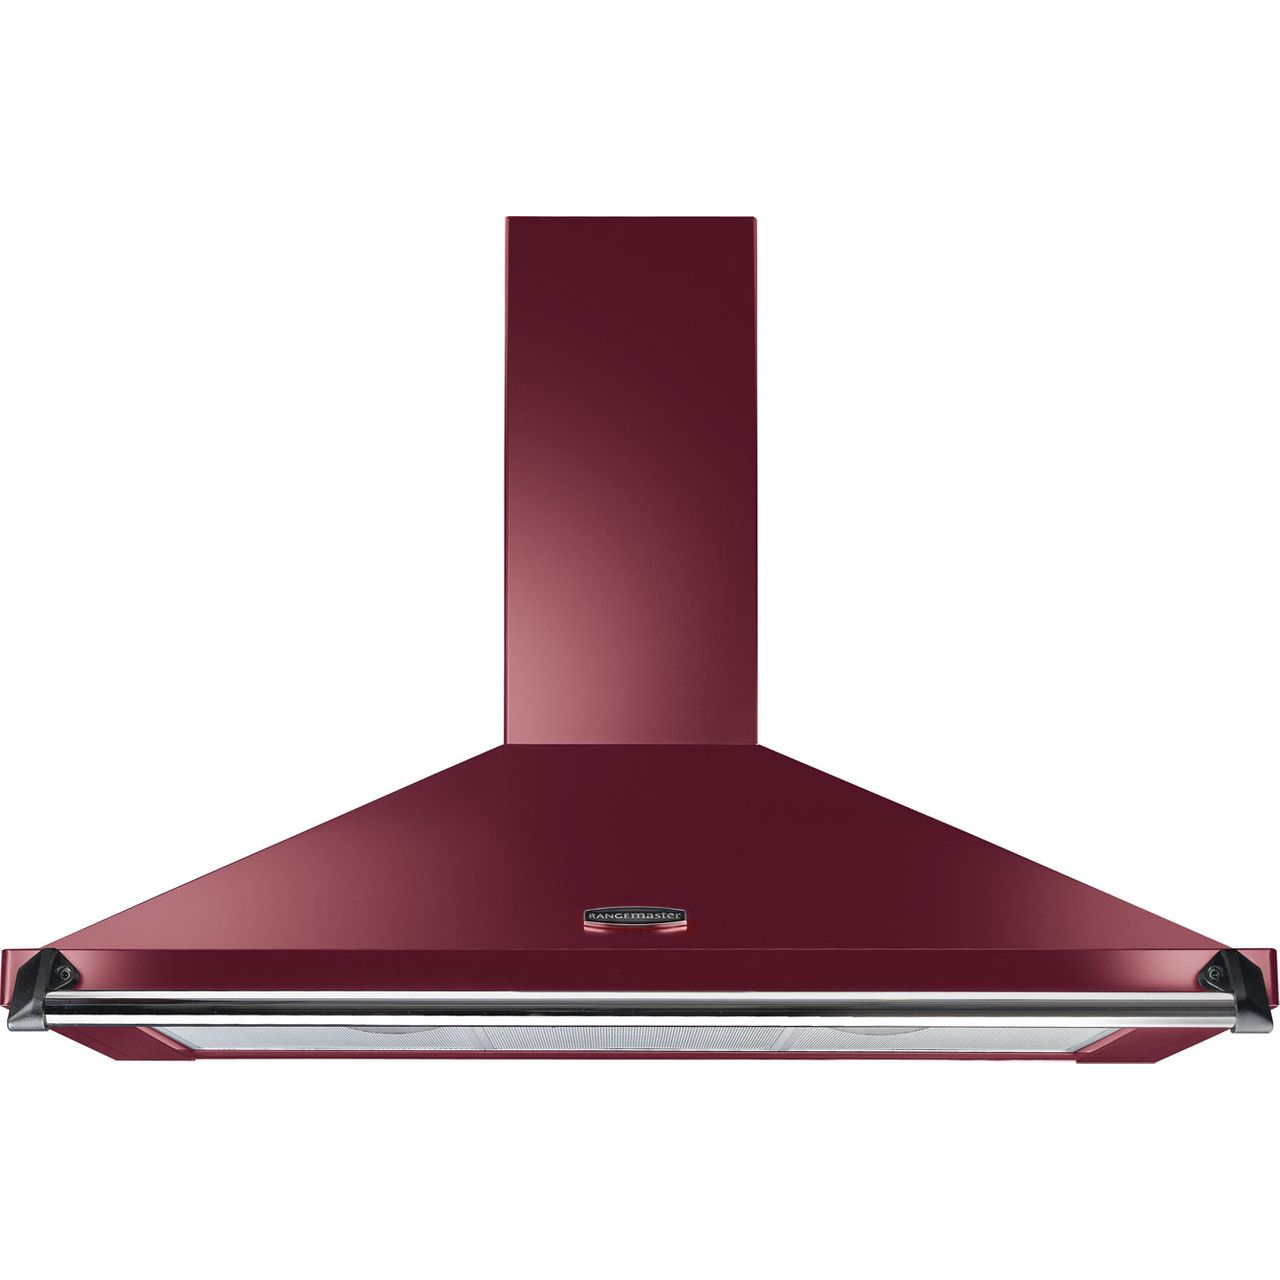 Rangemaster Classic CLAHDC110CYC Integrated Cooker Hood in Cranberry  Chrome